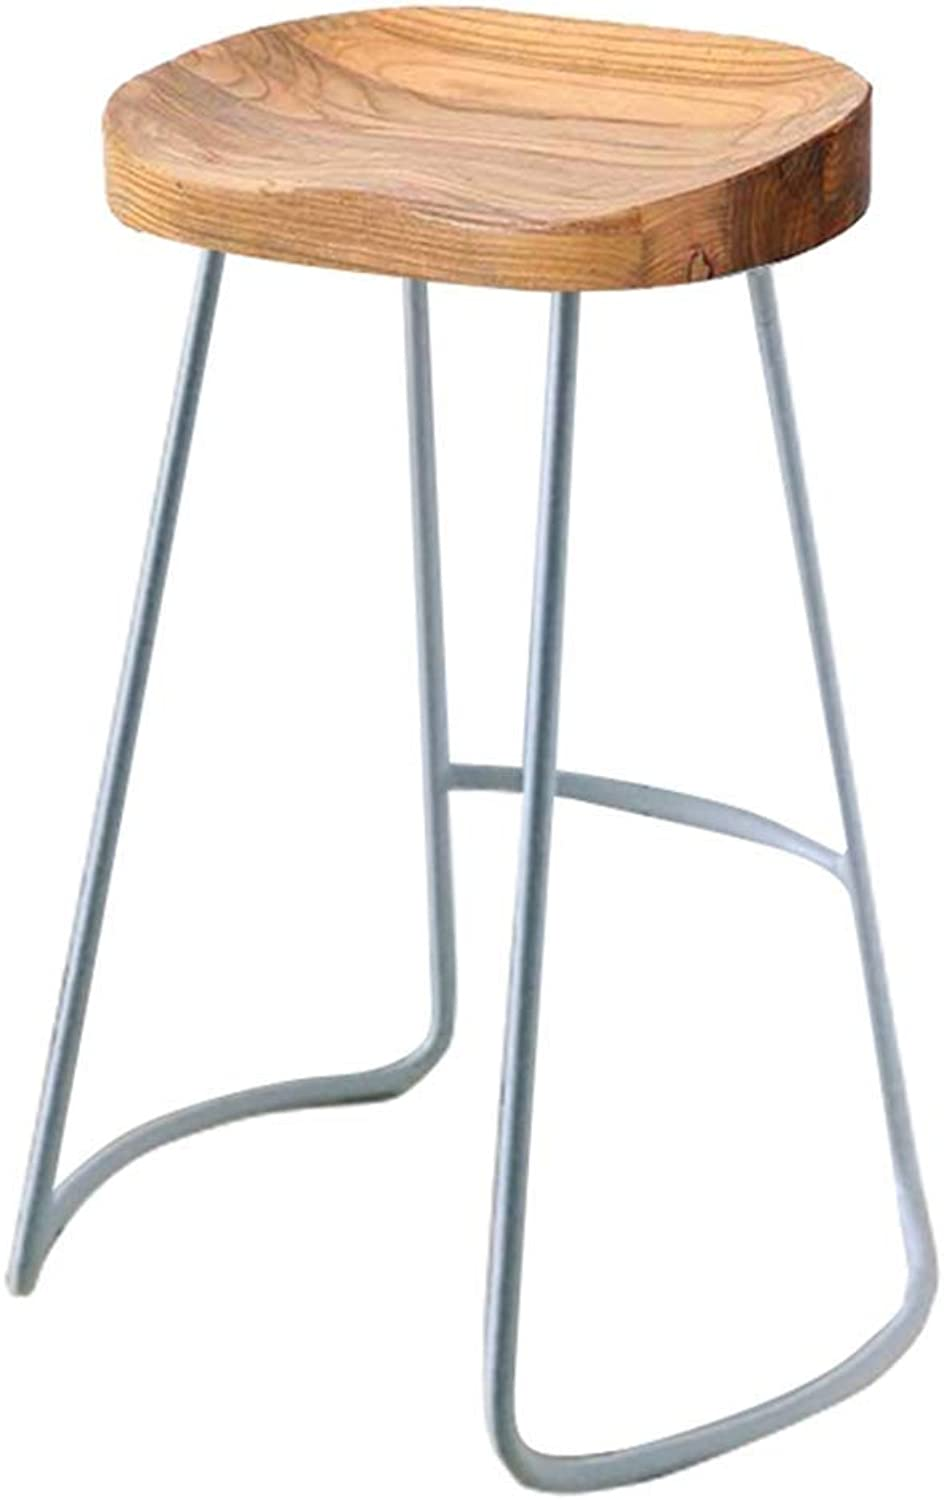 Bar Stool Modern Minimalist Dining Chair Cafe High Stool Leisure Stool Metal Legs Design Sitting HENGXIAO (color   Silver Leg, Size   75cm)